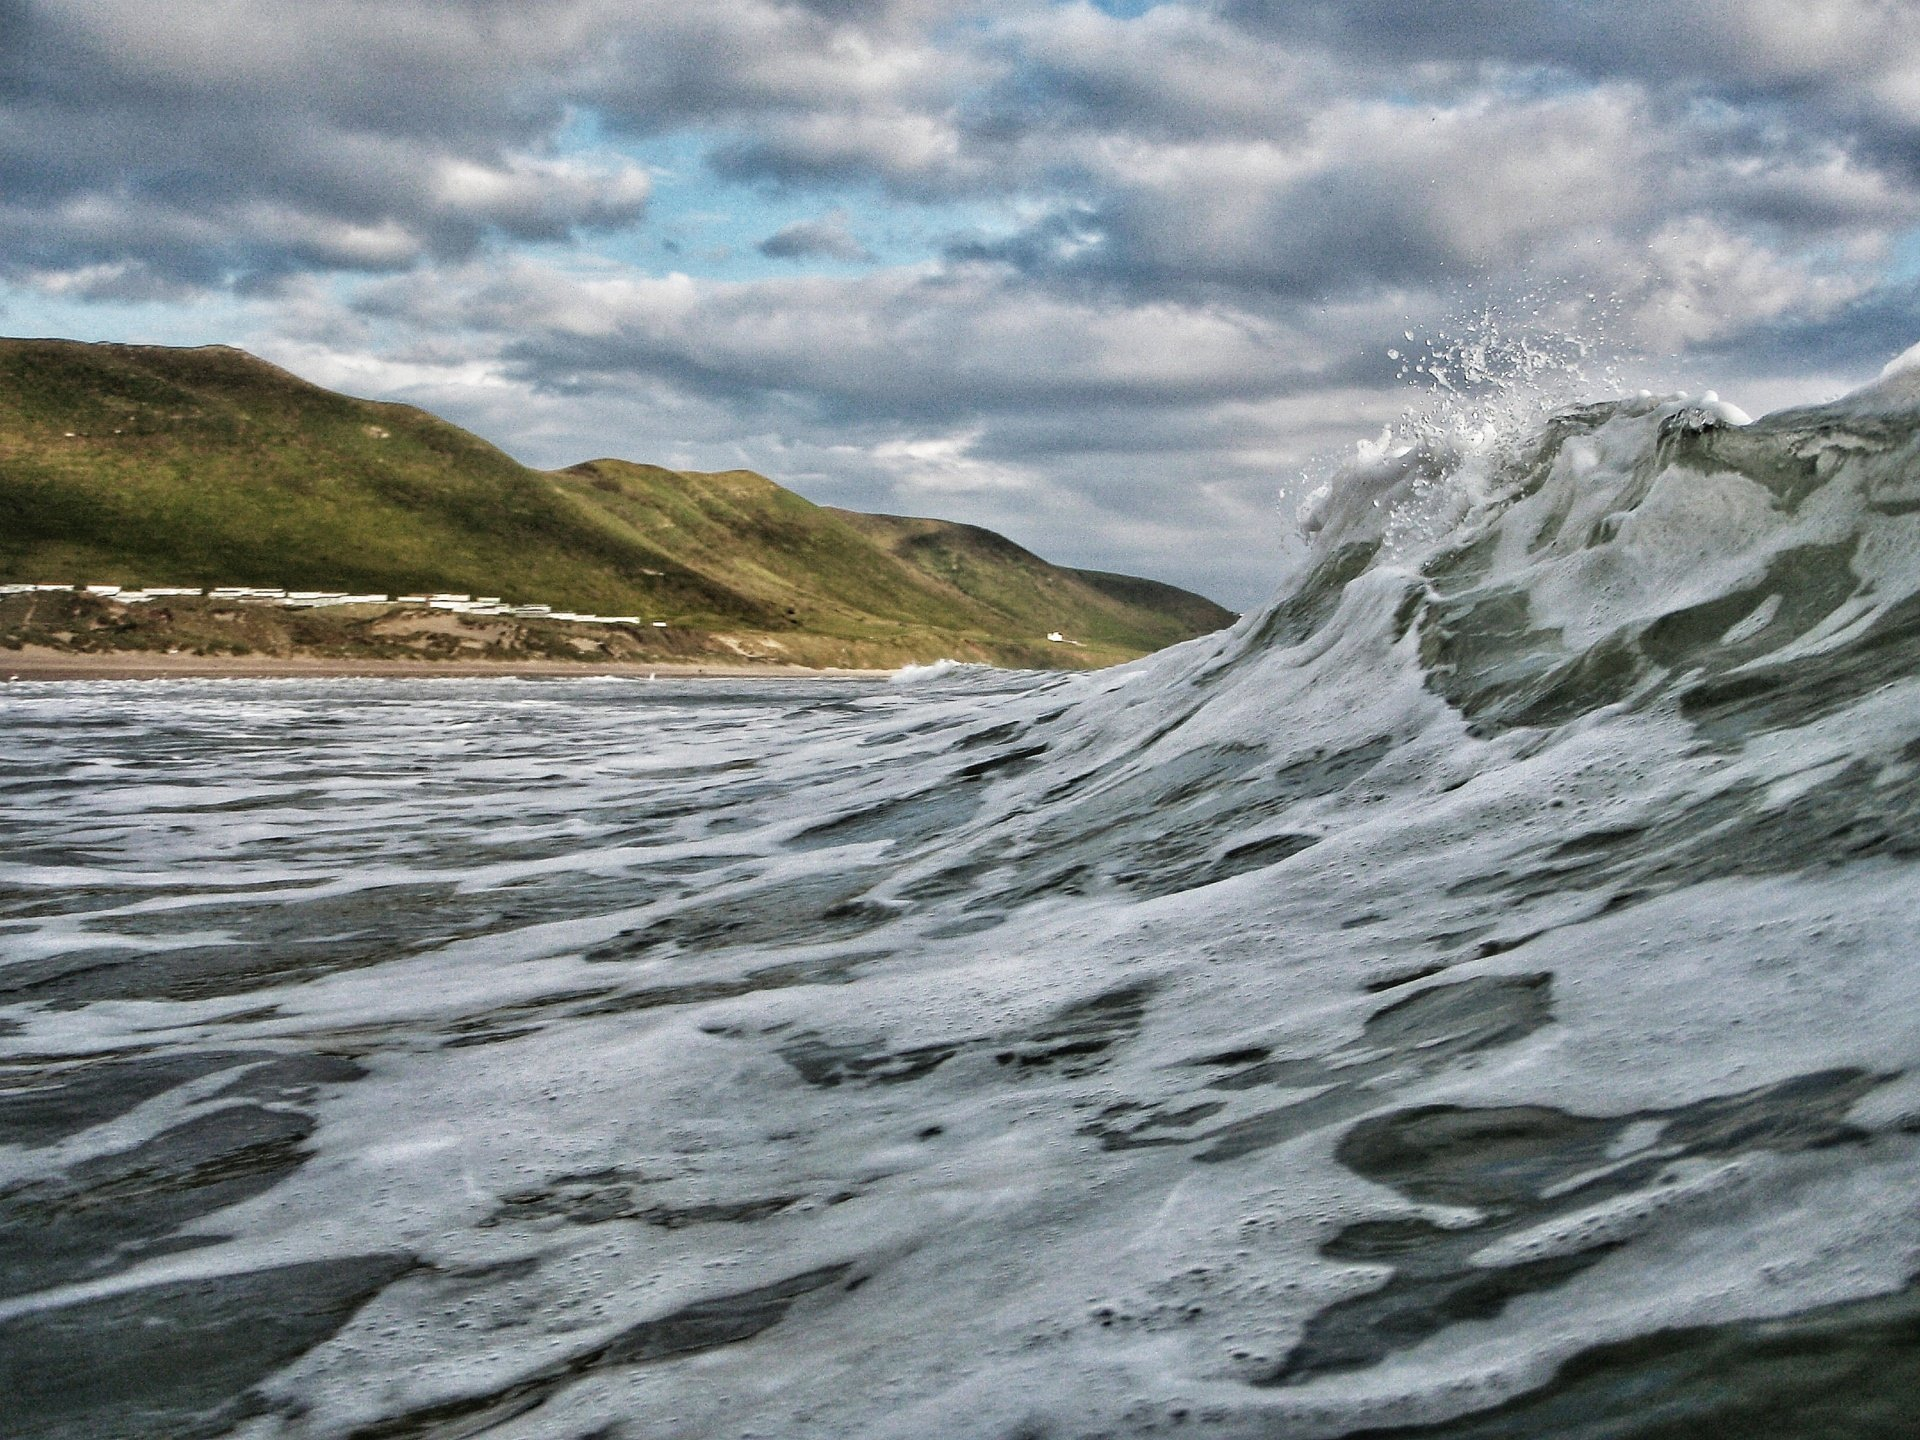 Alasdair Bater's photo of Llangennith / Rhossili